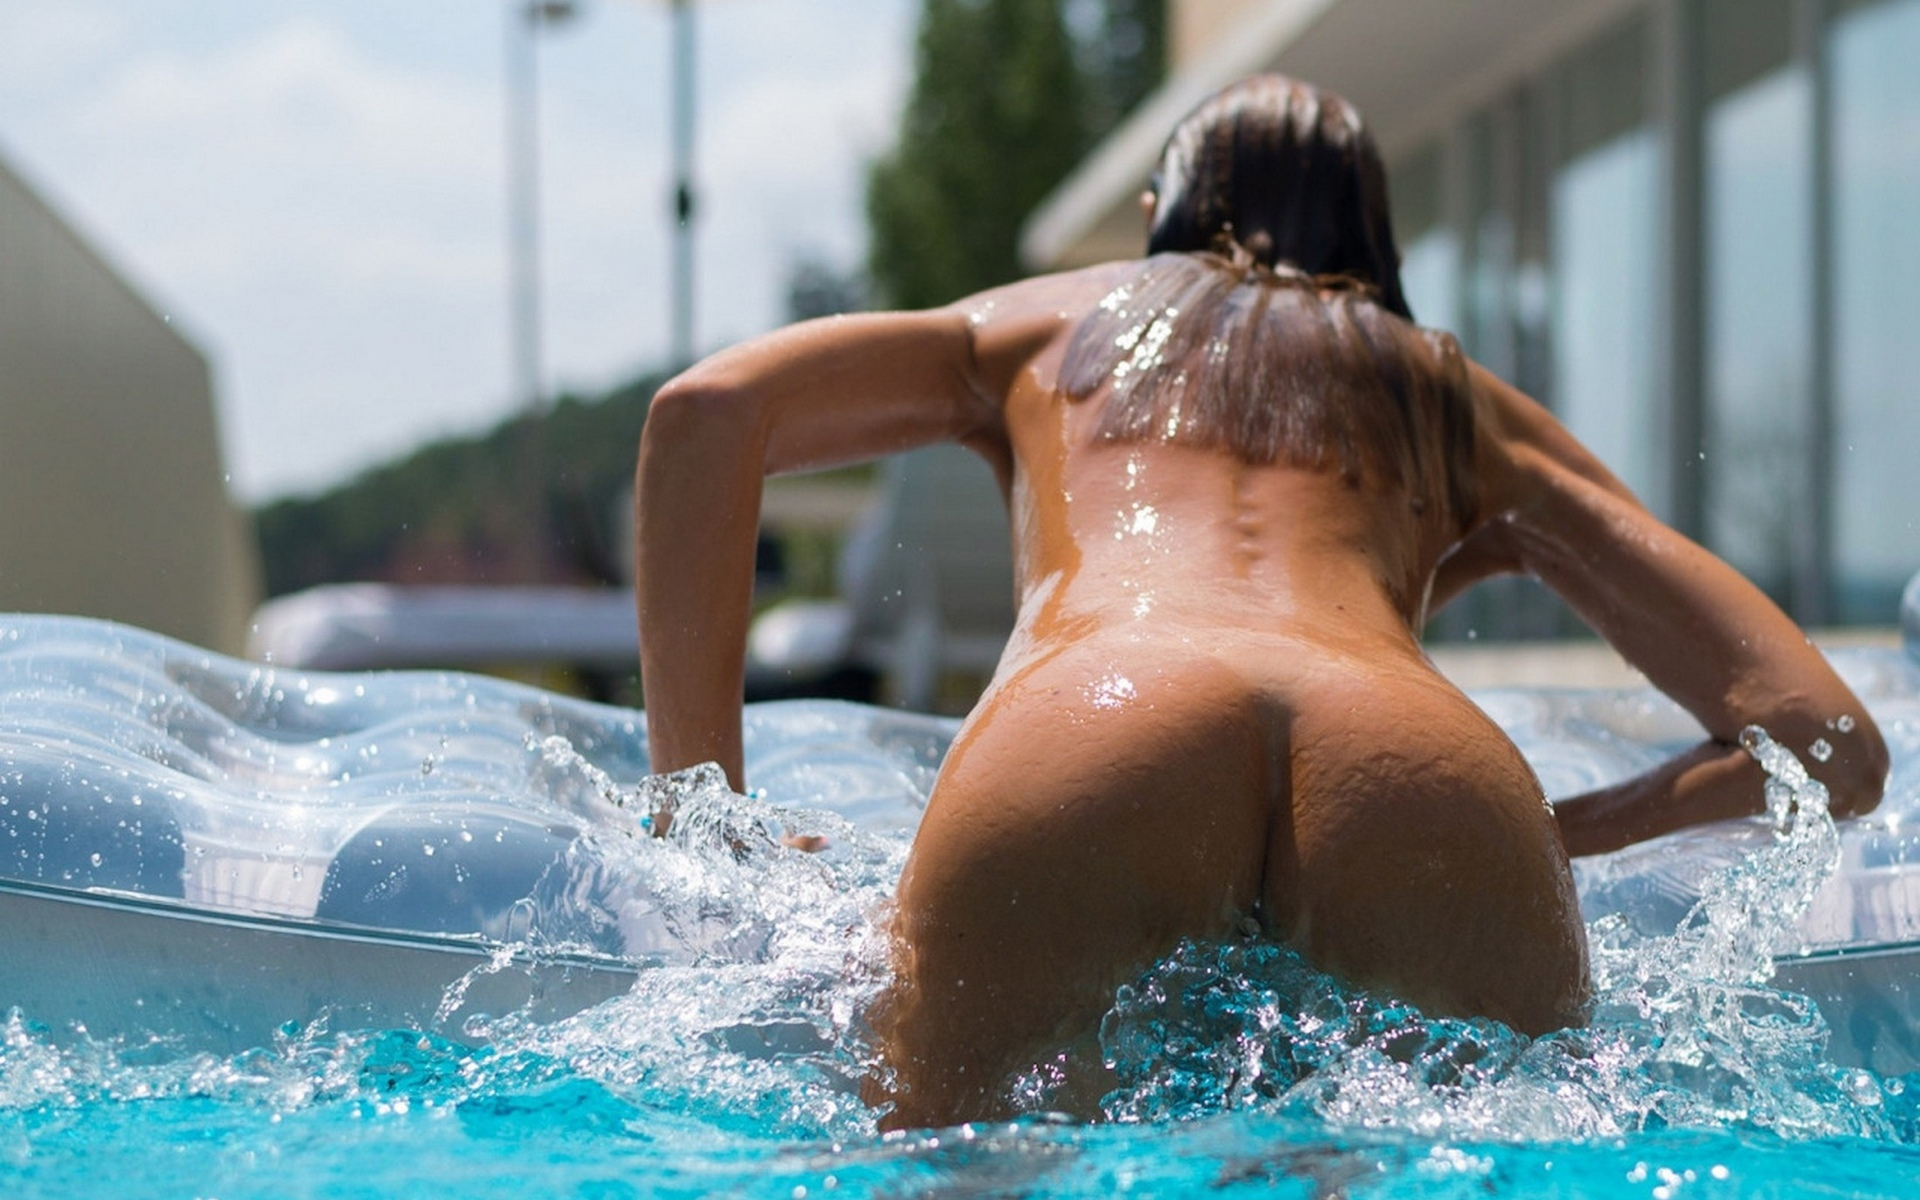 Naked women at the swimming pool — photo 9